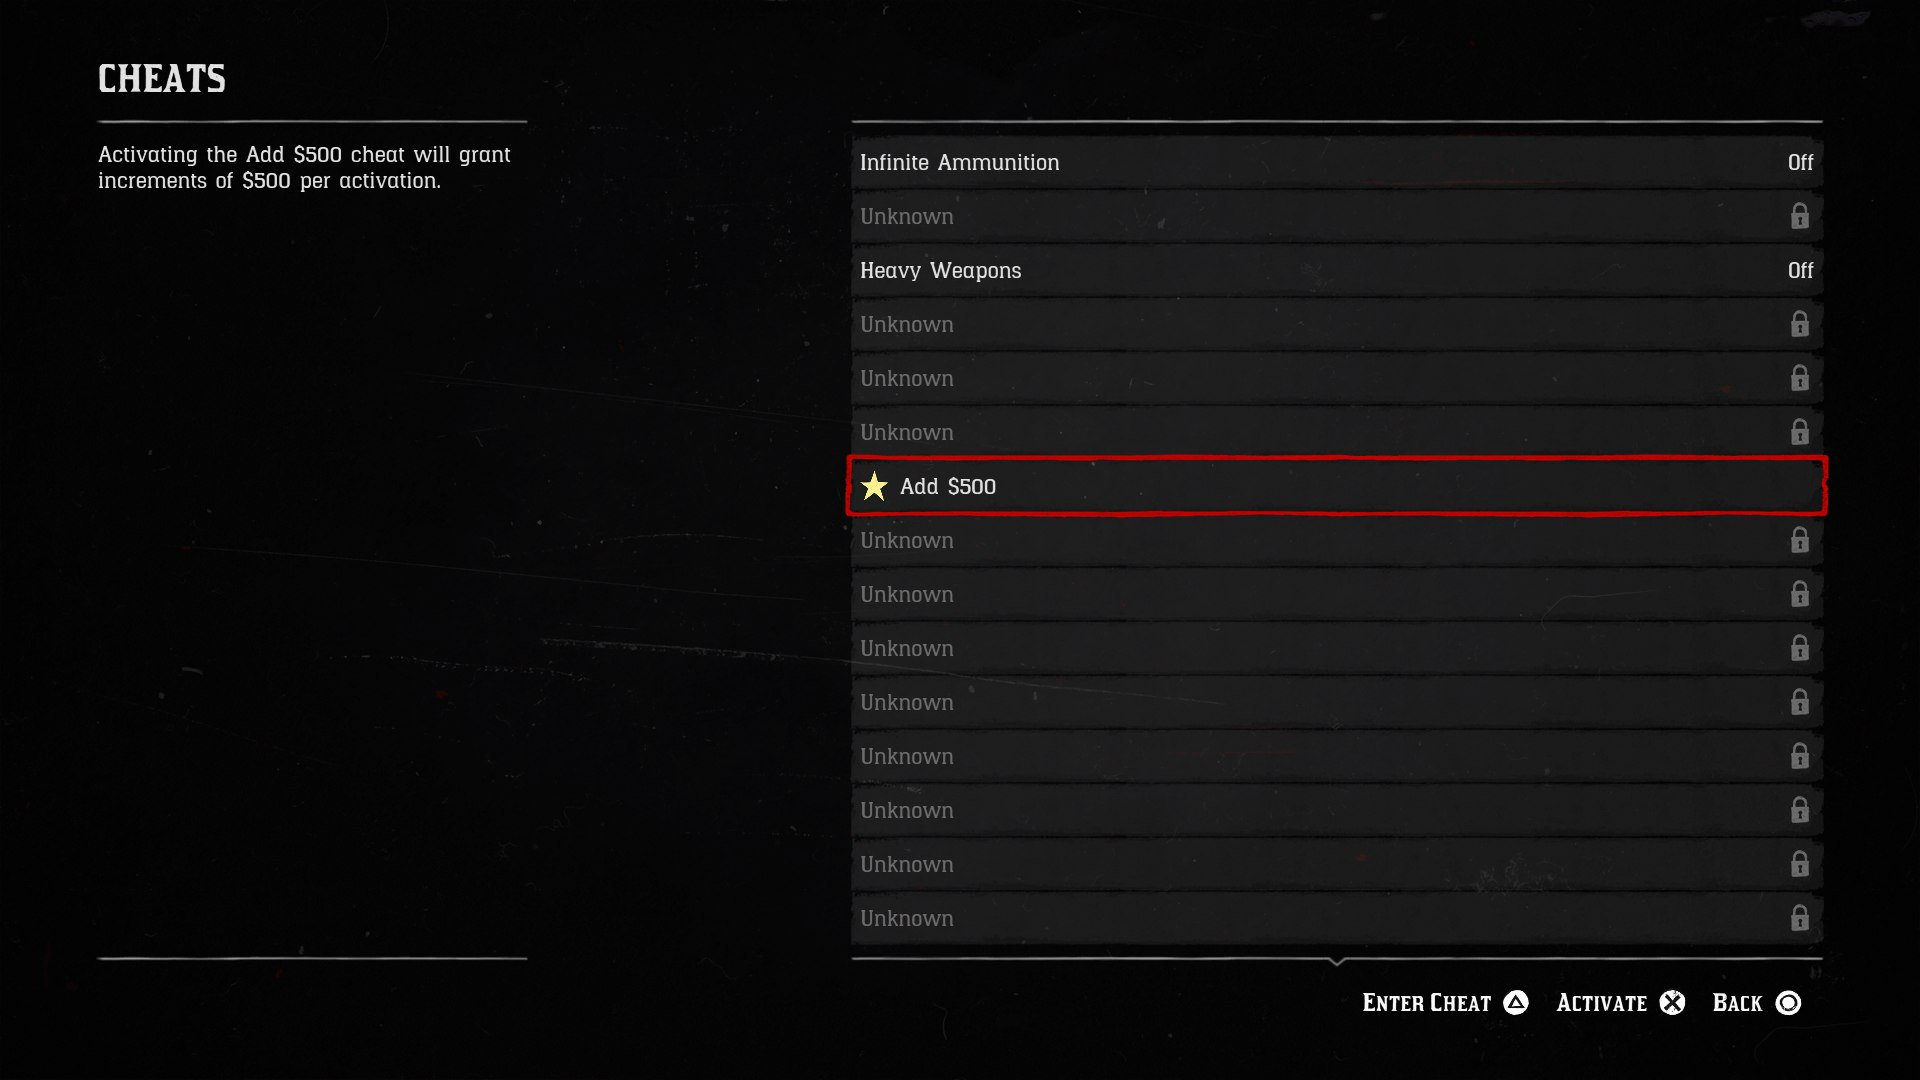 Red Dead Redemption 2 Cheat Codes - How to Find Cheats in